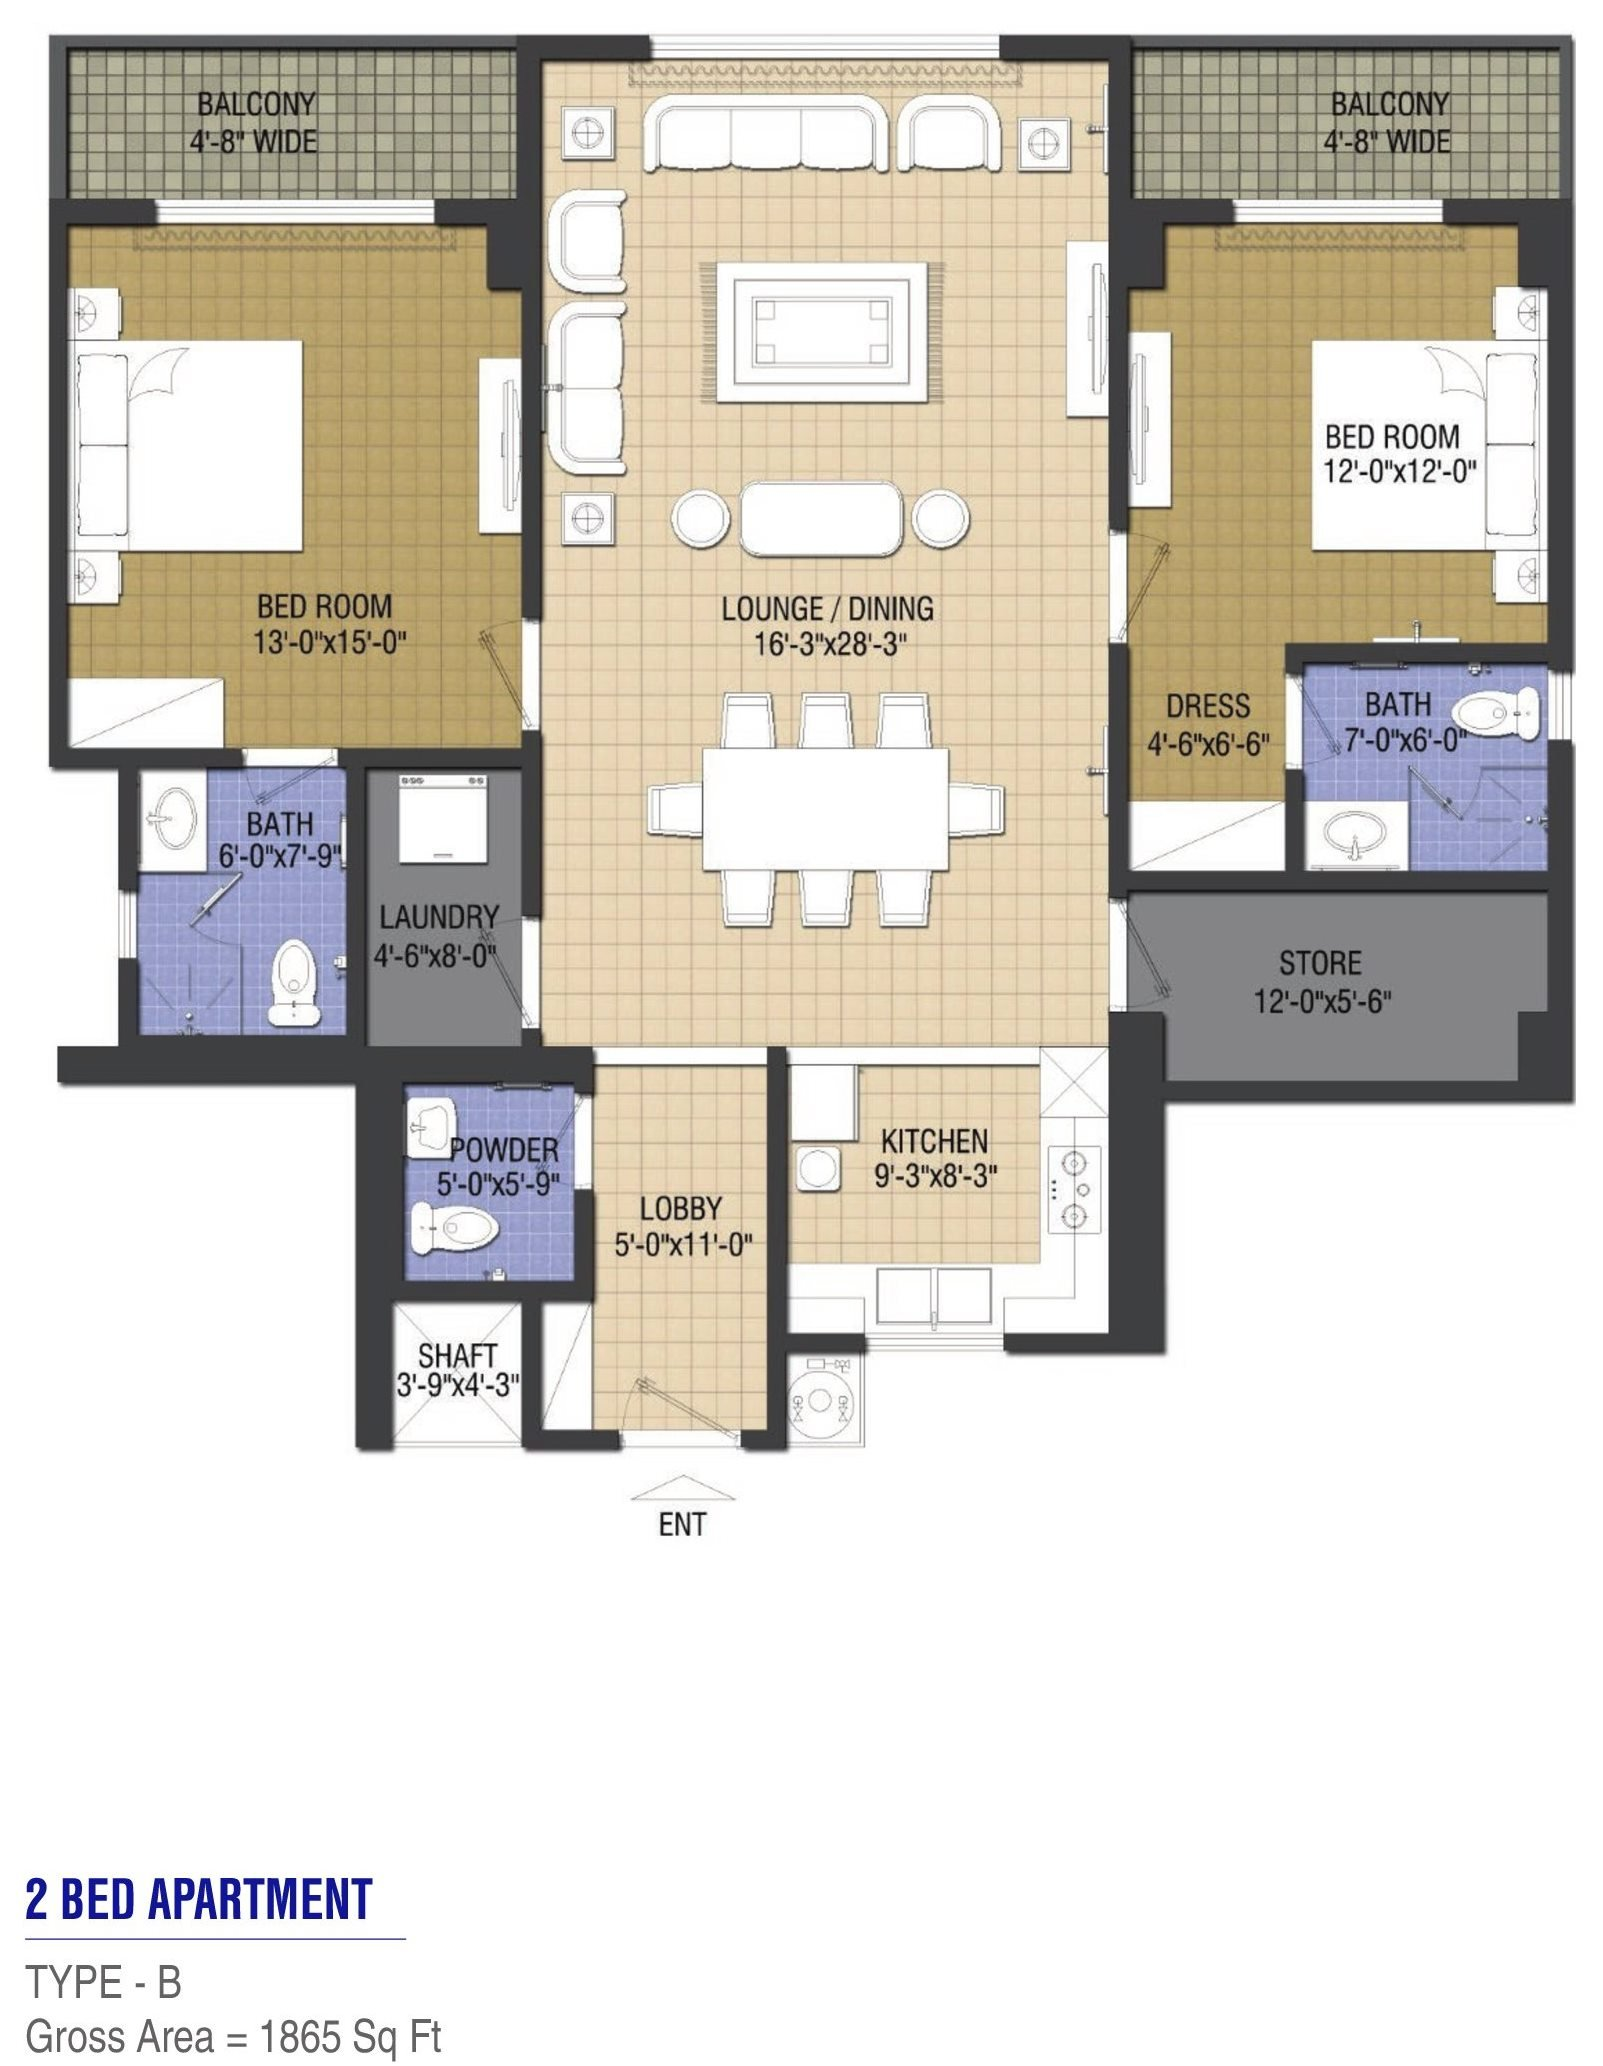 Goldcrest Chic 1 - 2 bed - Type B